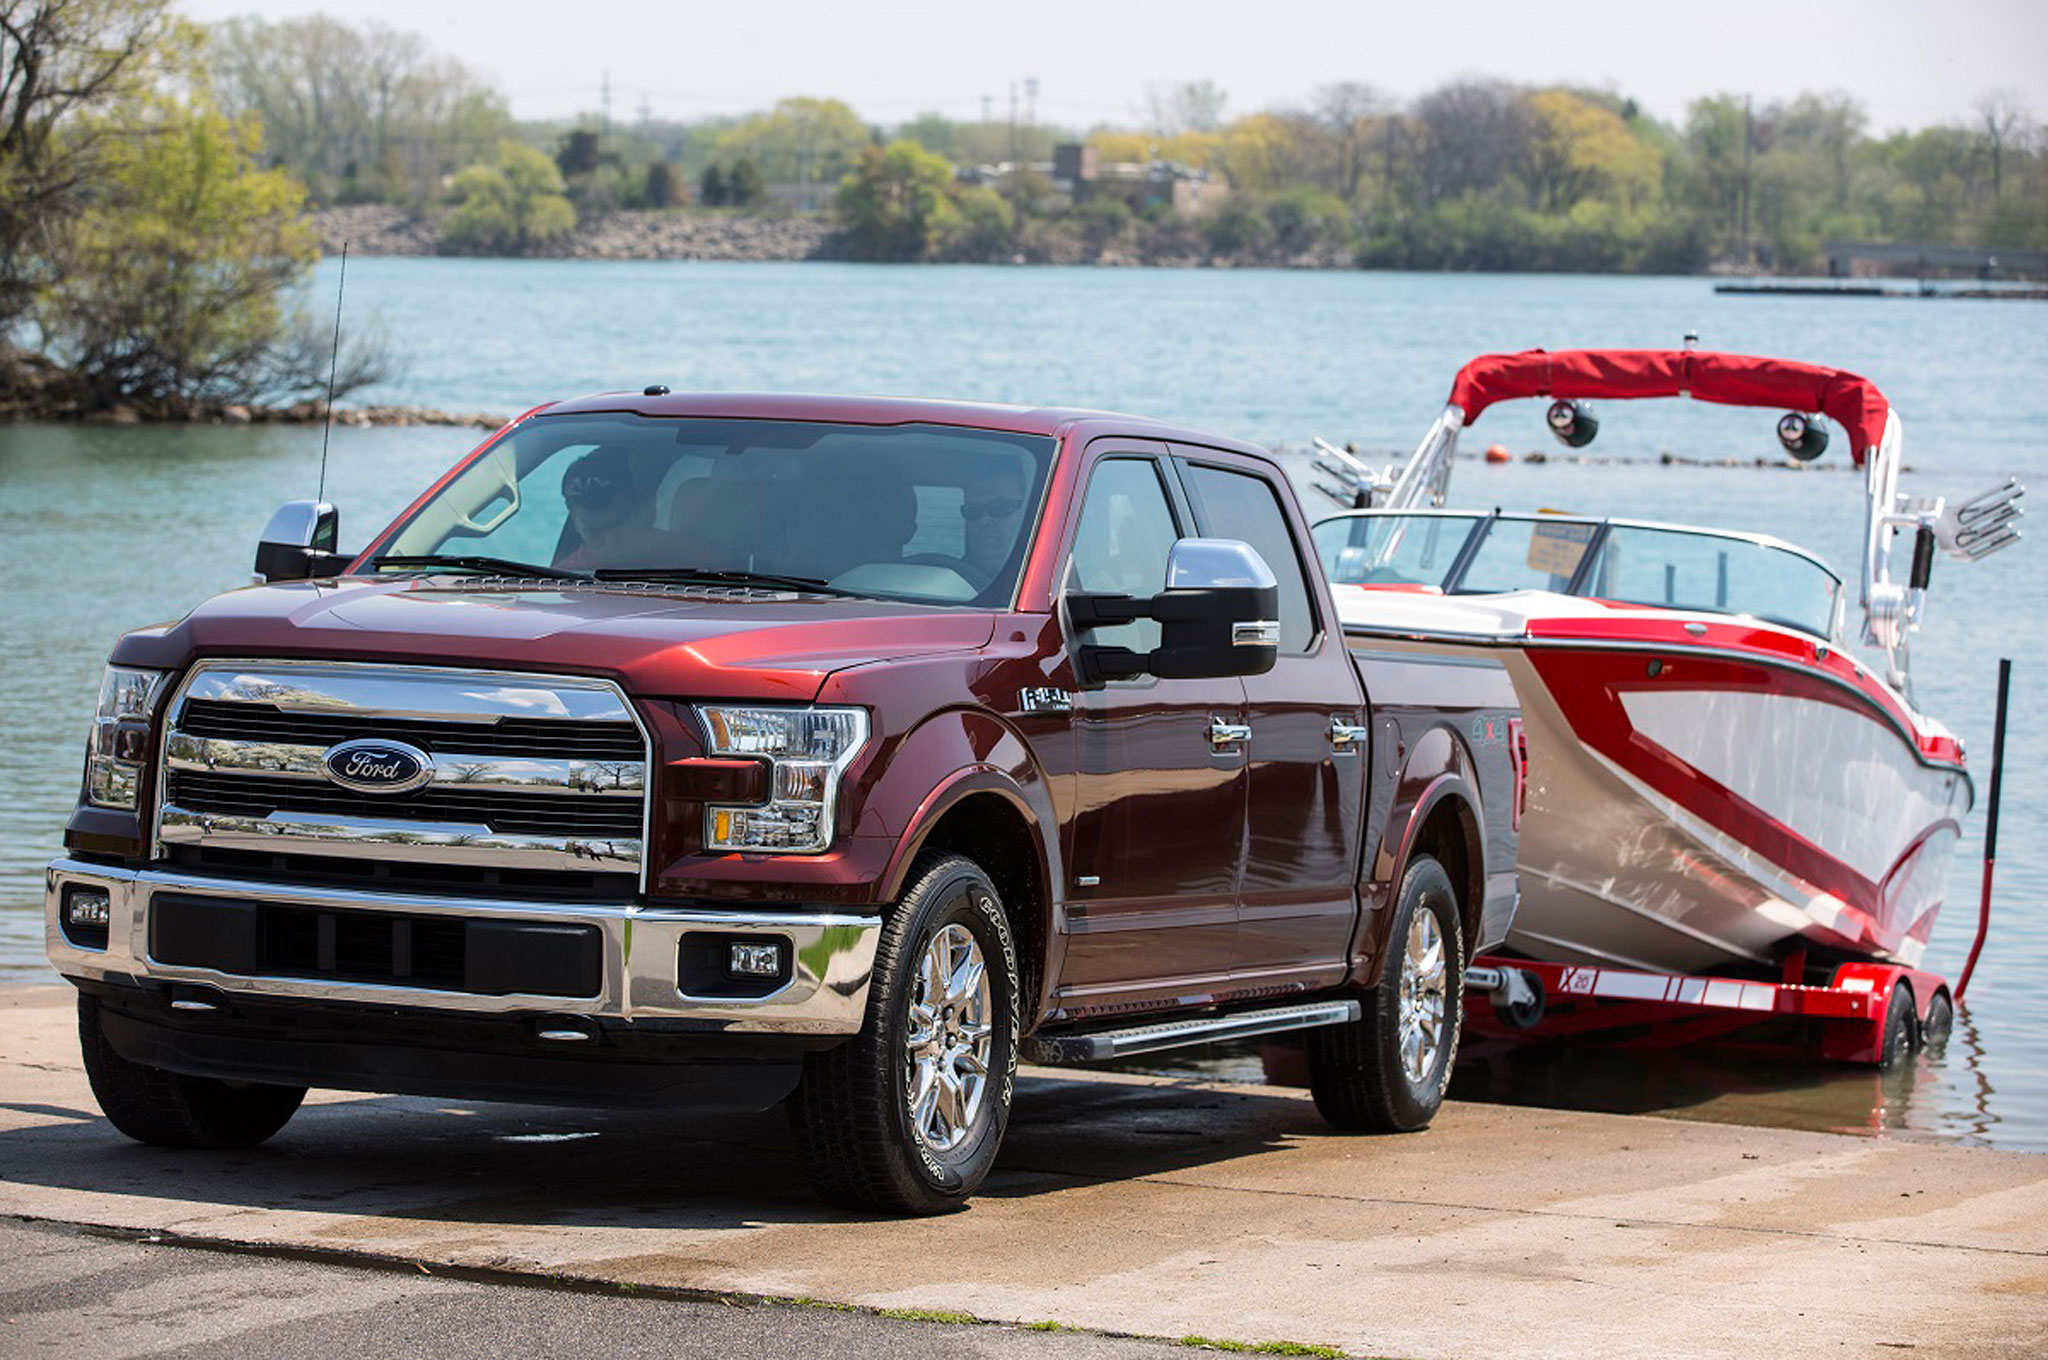 2016 Ford F-150 Adds Pro Trailer Backup Assist System